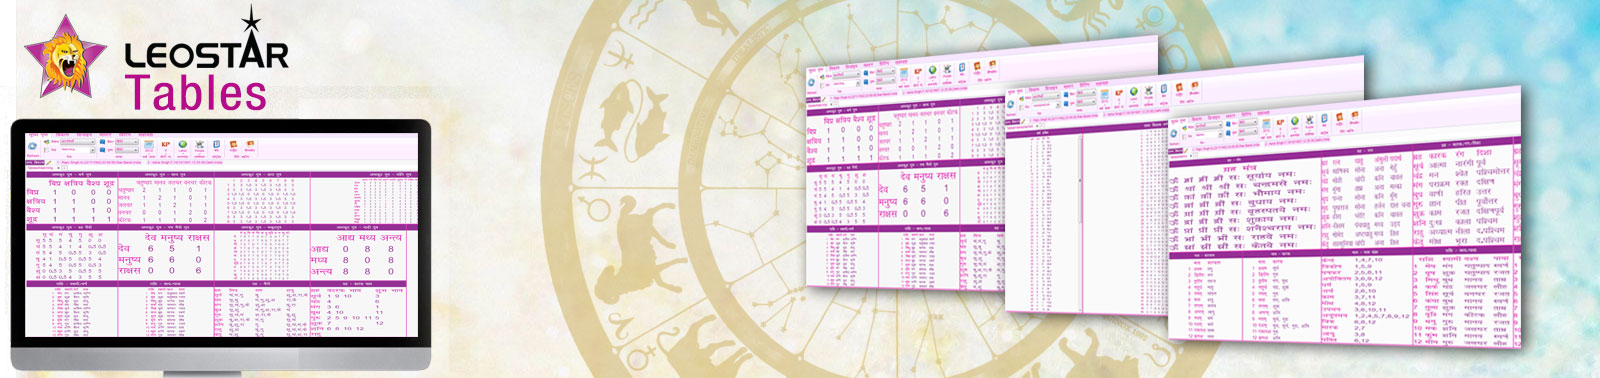 astrology tables software